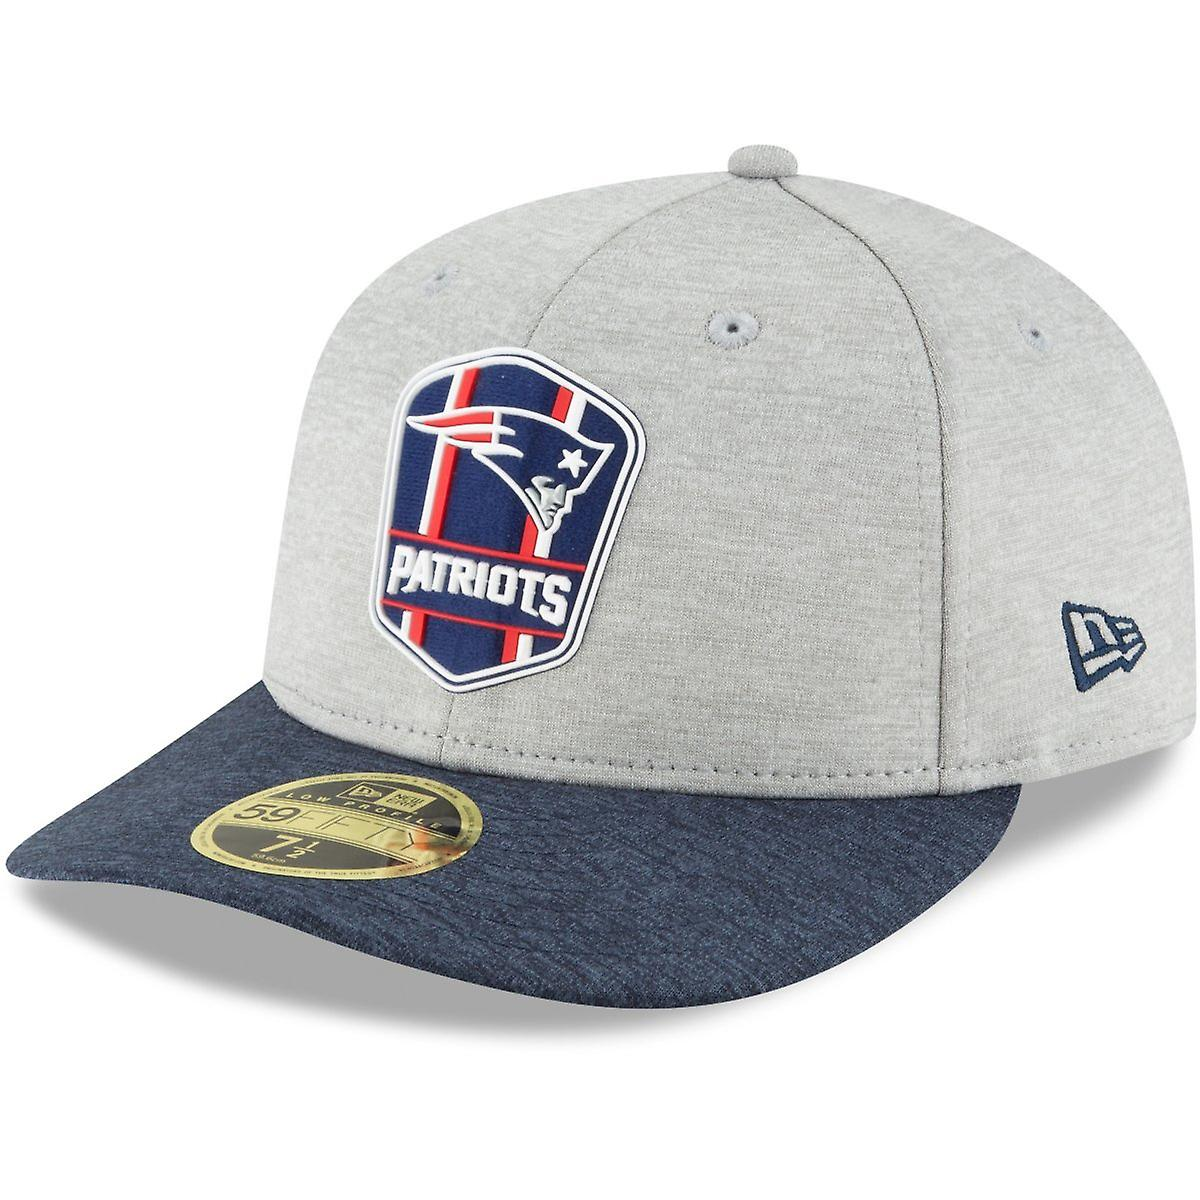 online store abade 9f800 New era 59Fifty Cap - New England Patriots sideline away LP